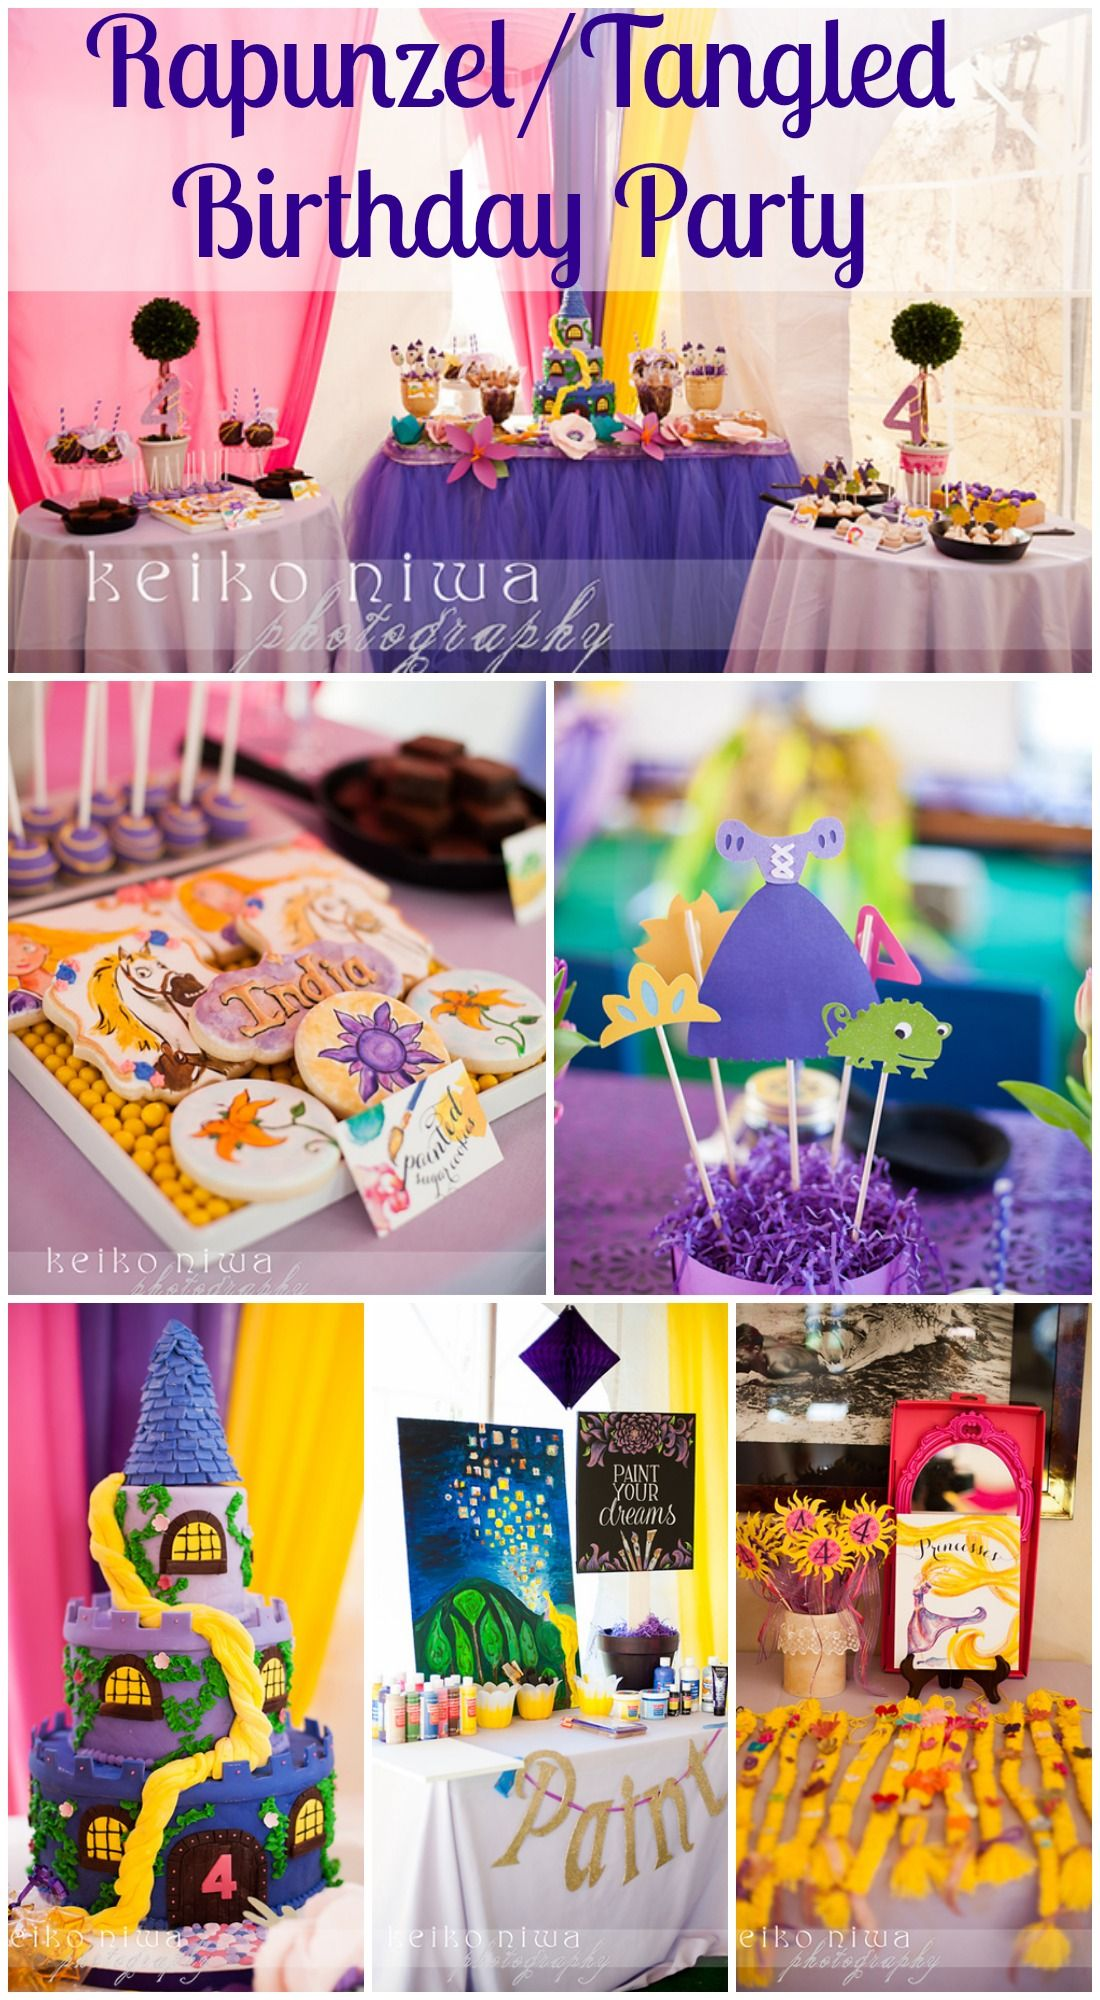 Rapunzel Birthday Cake On Pinterest Rapunzel Cake